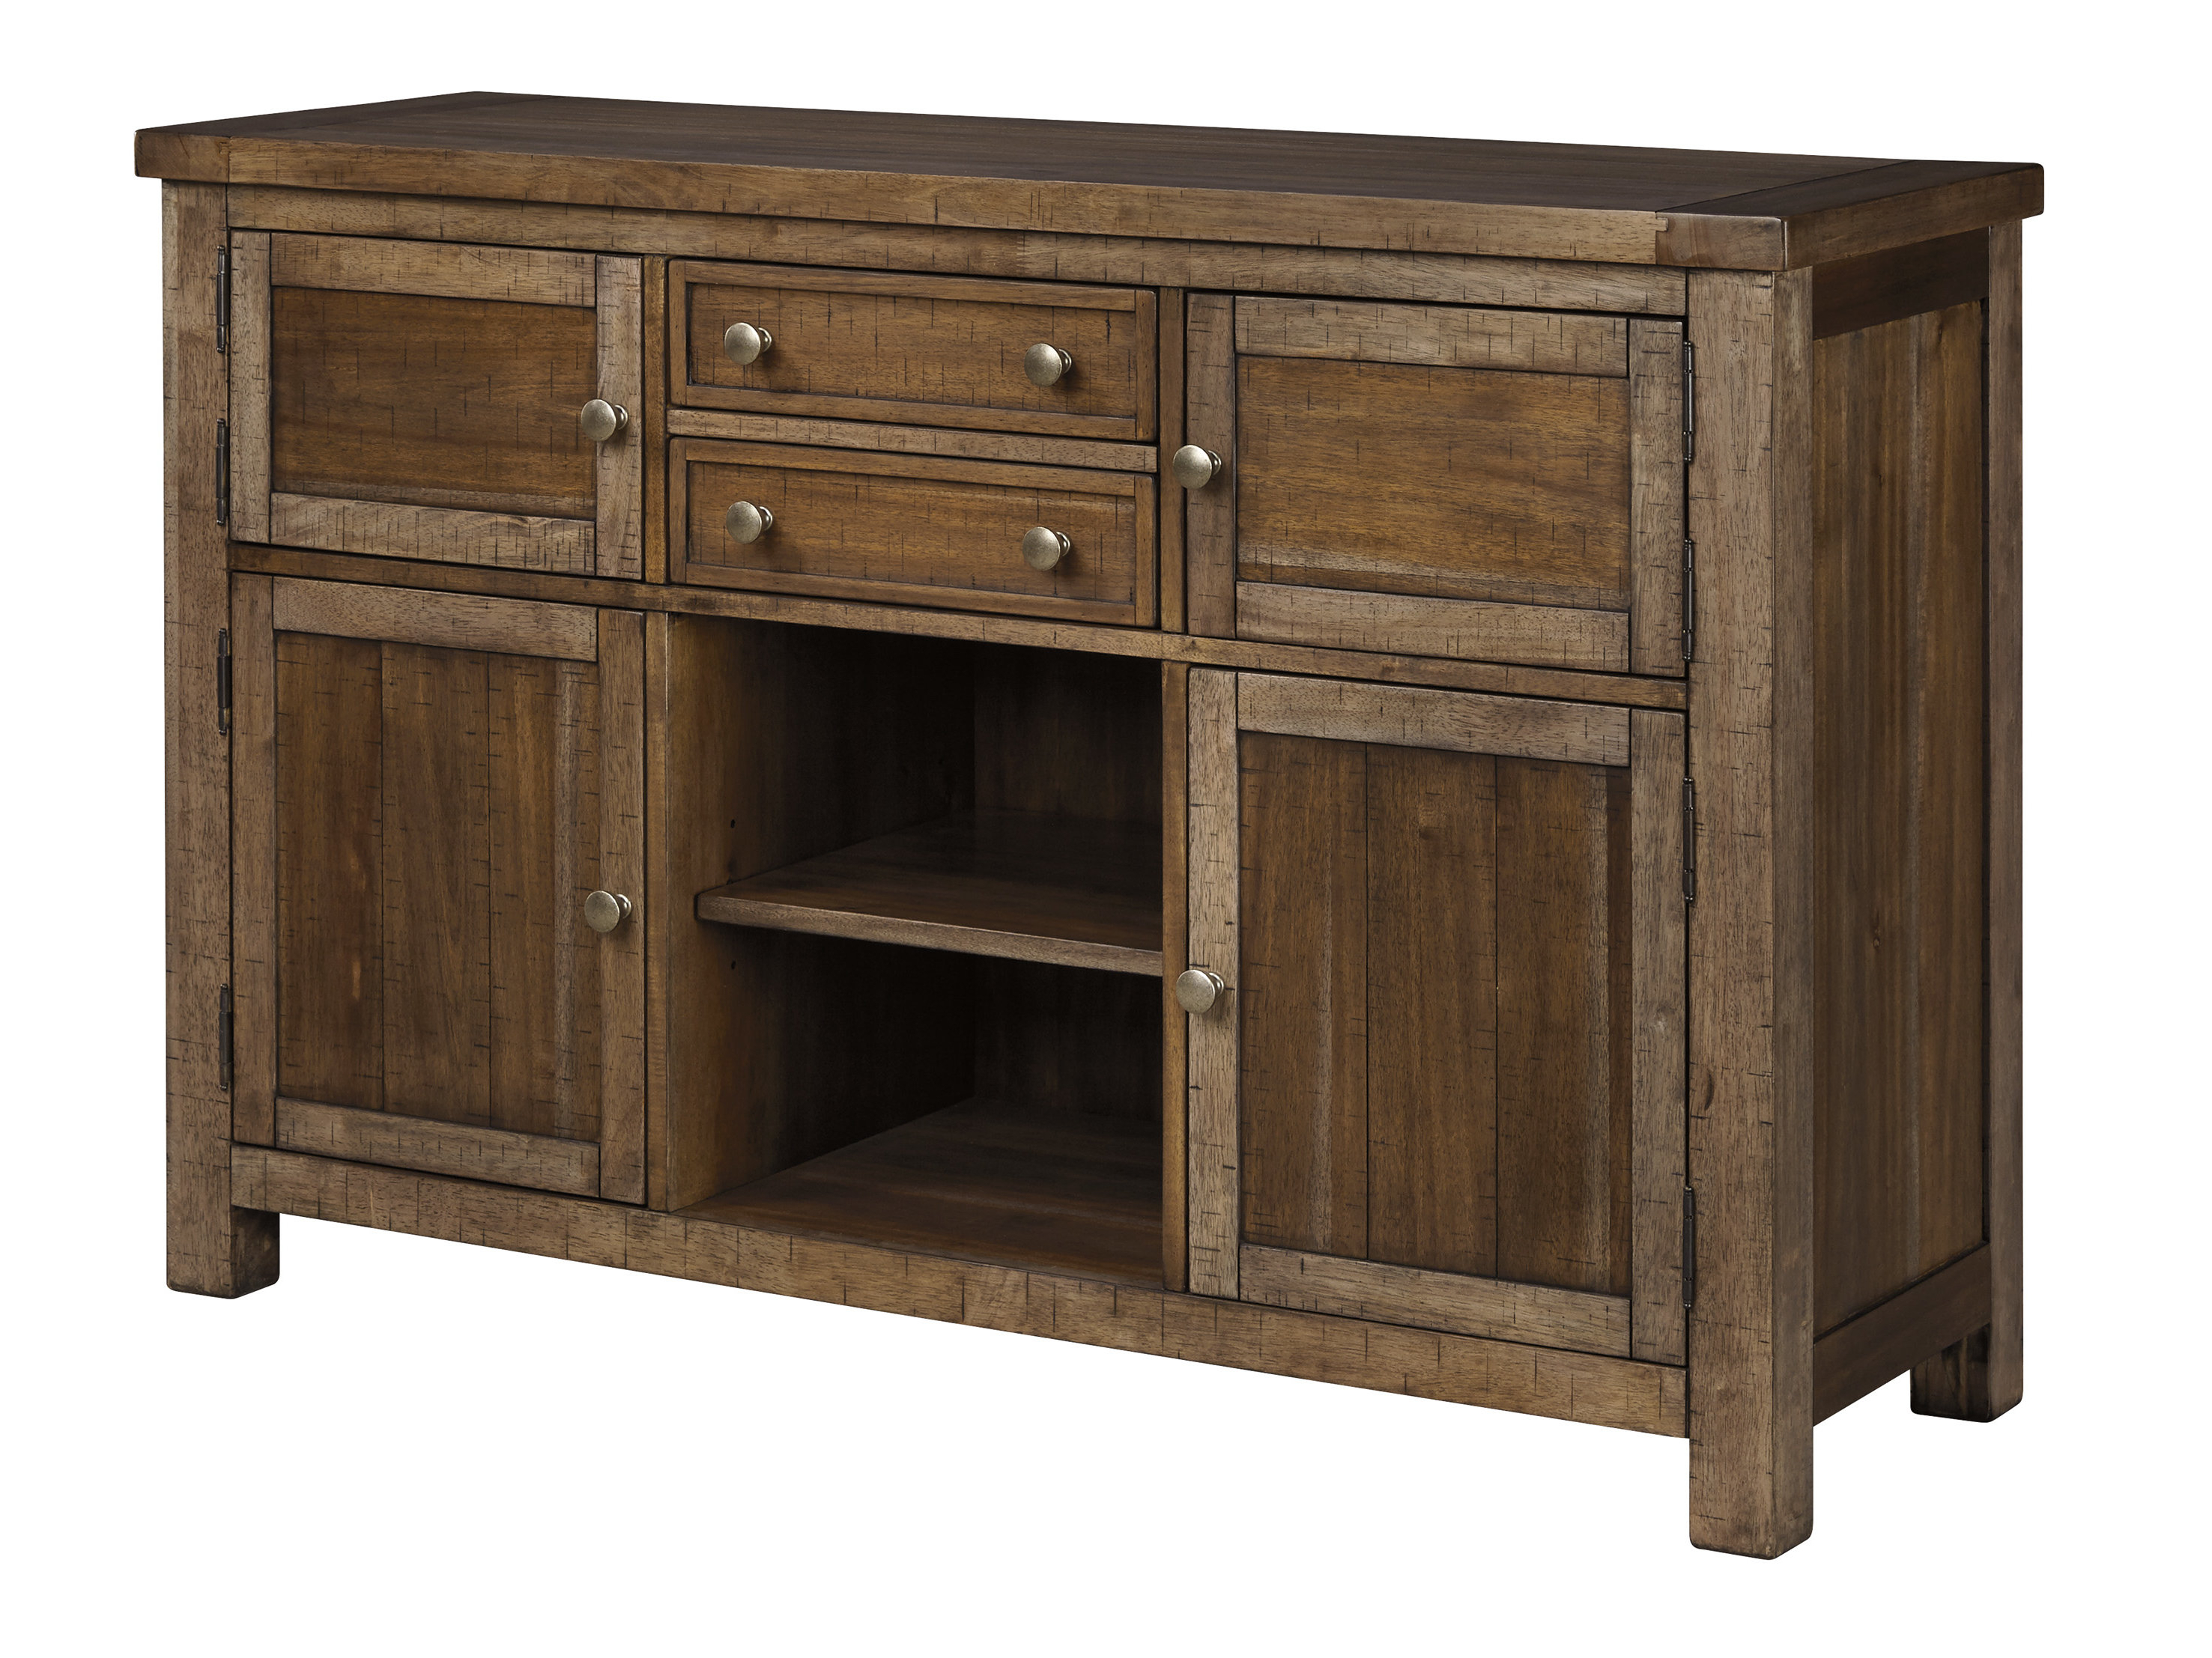 Hillary Dining Room Buffet Table For Filkins Sideboards (View 13 of 20)